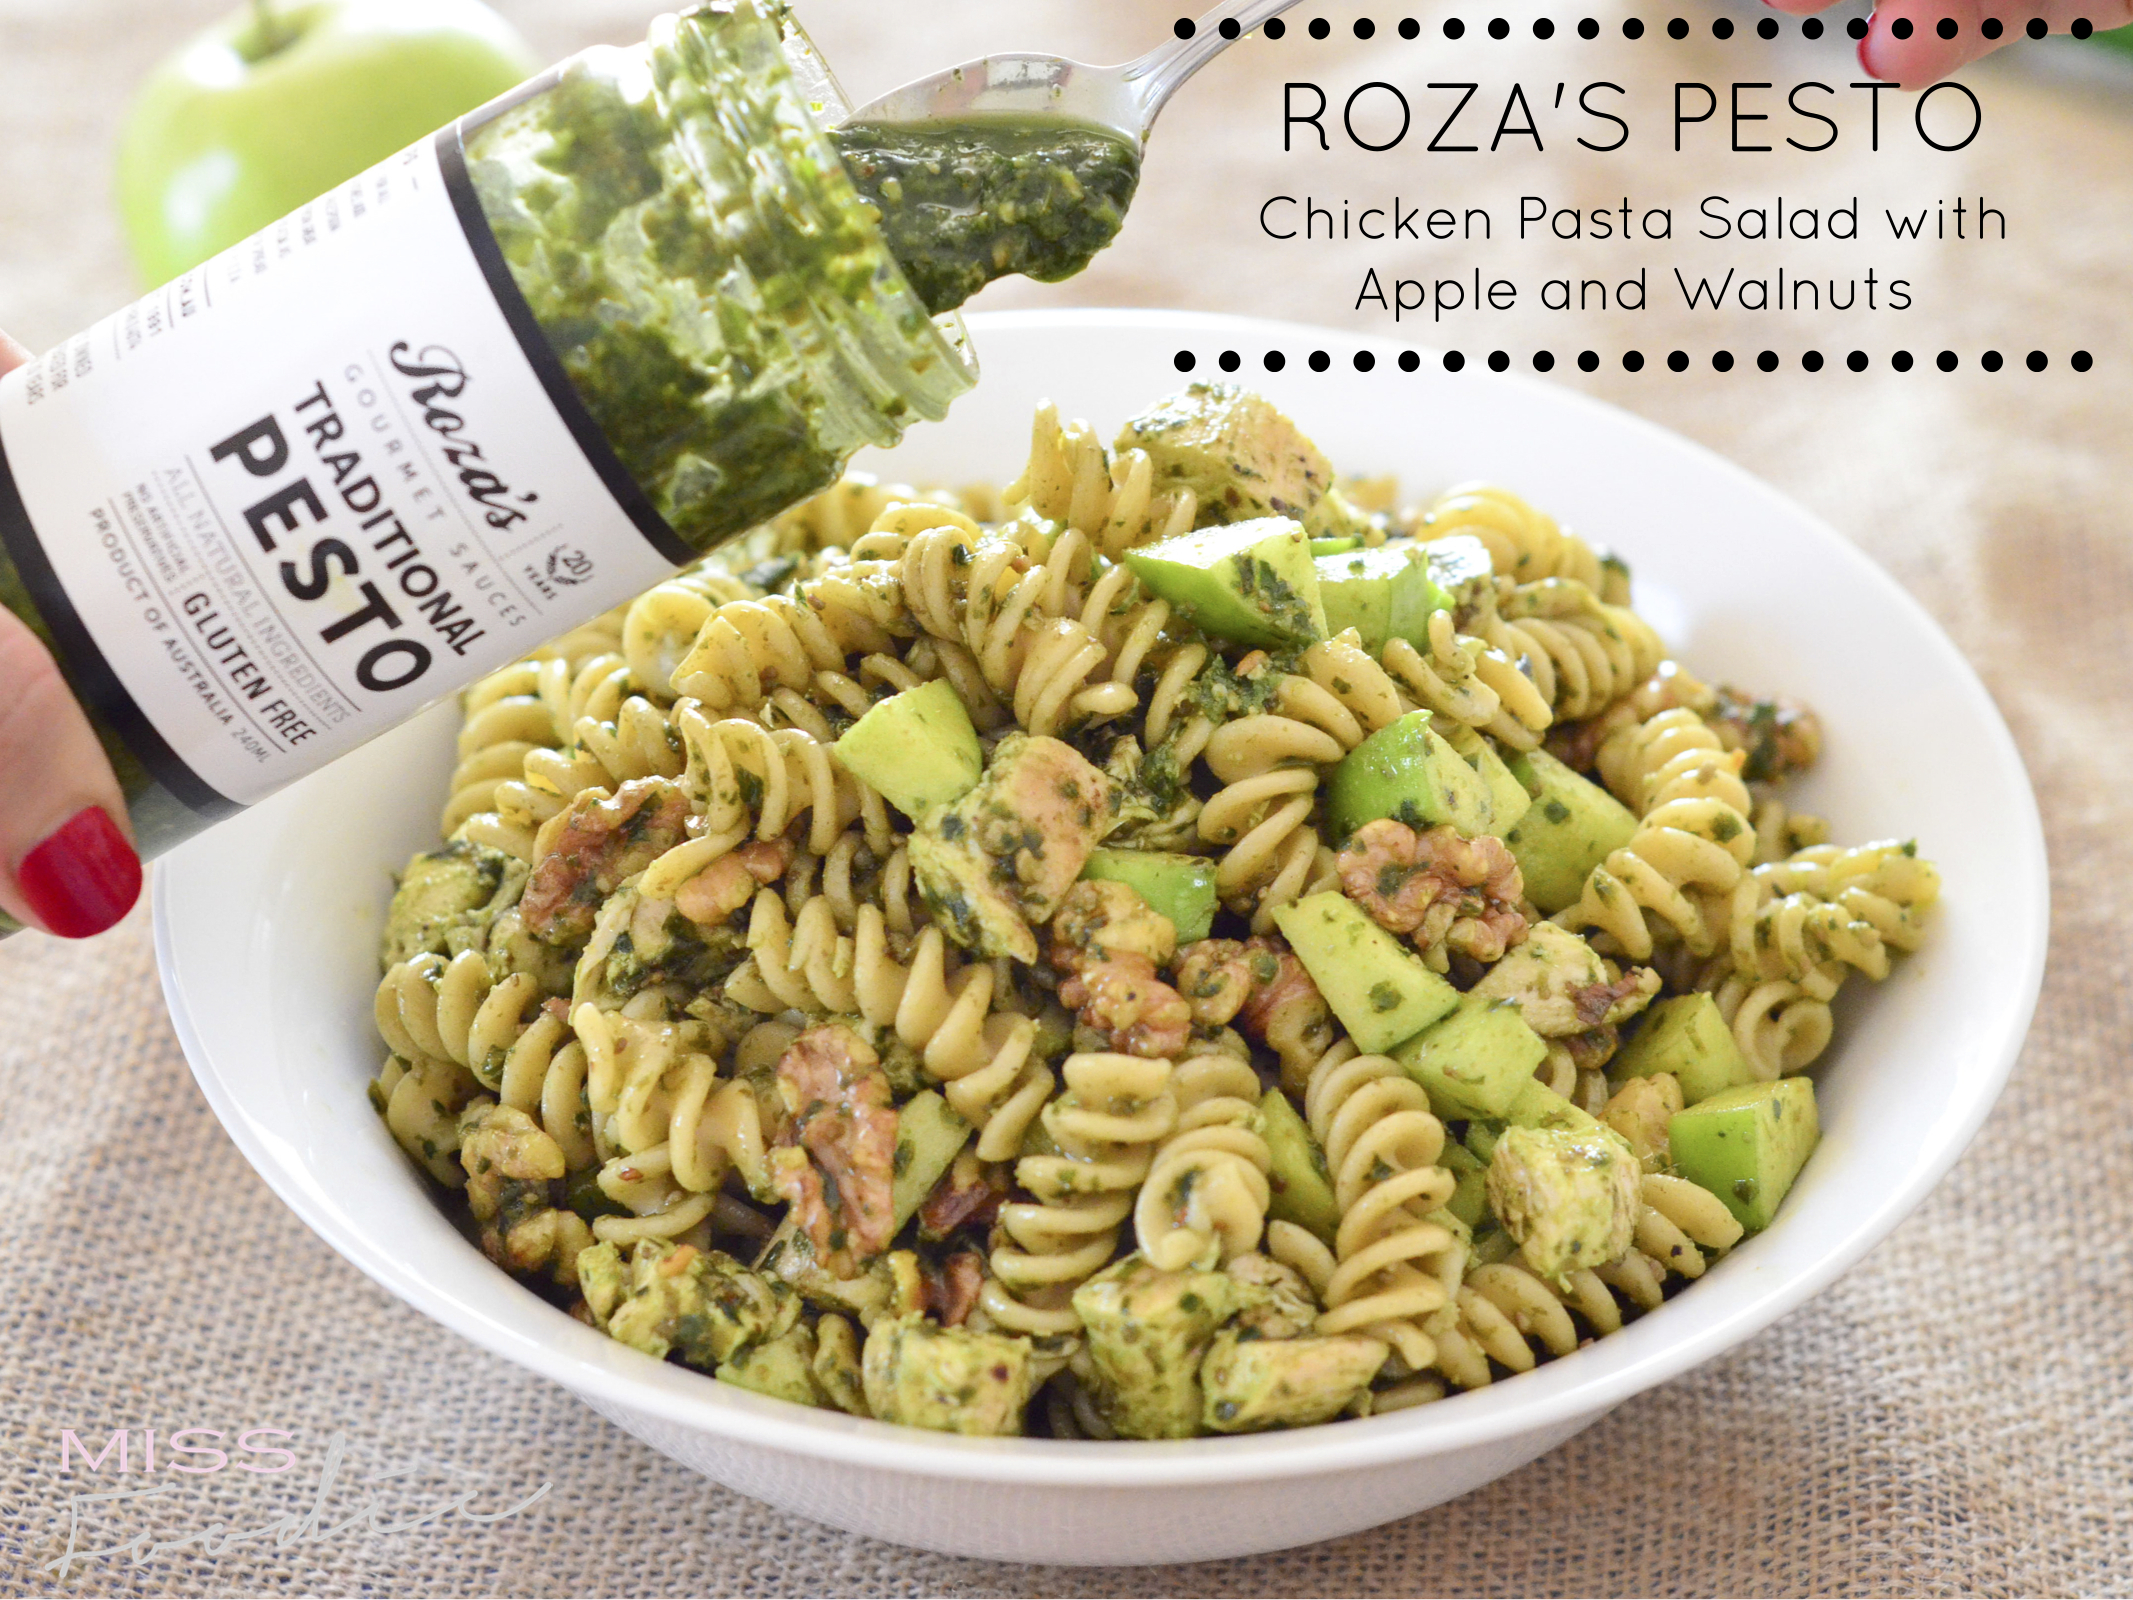 Rozas Pesto Chicken Pasta Salad w Apple and Walnuts - Miss Foodie